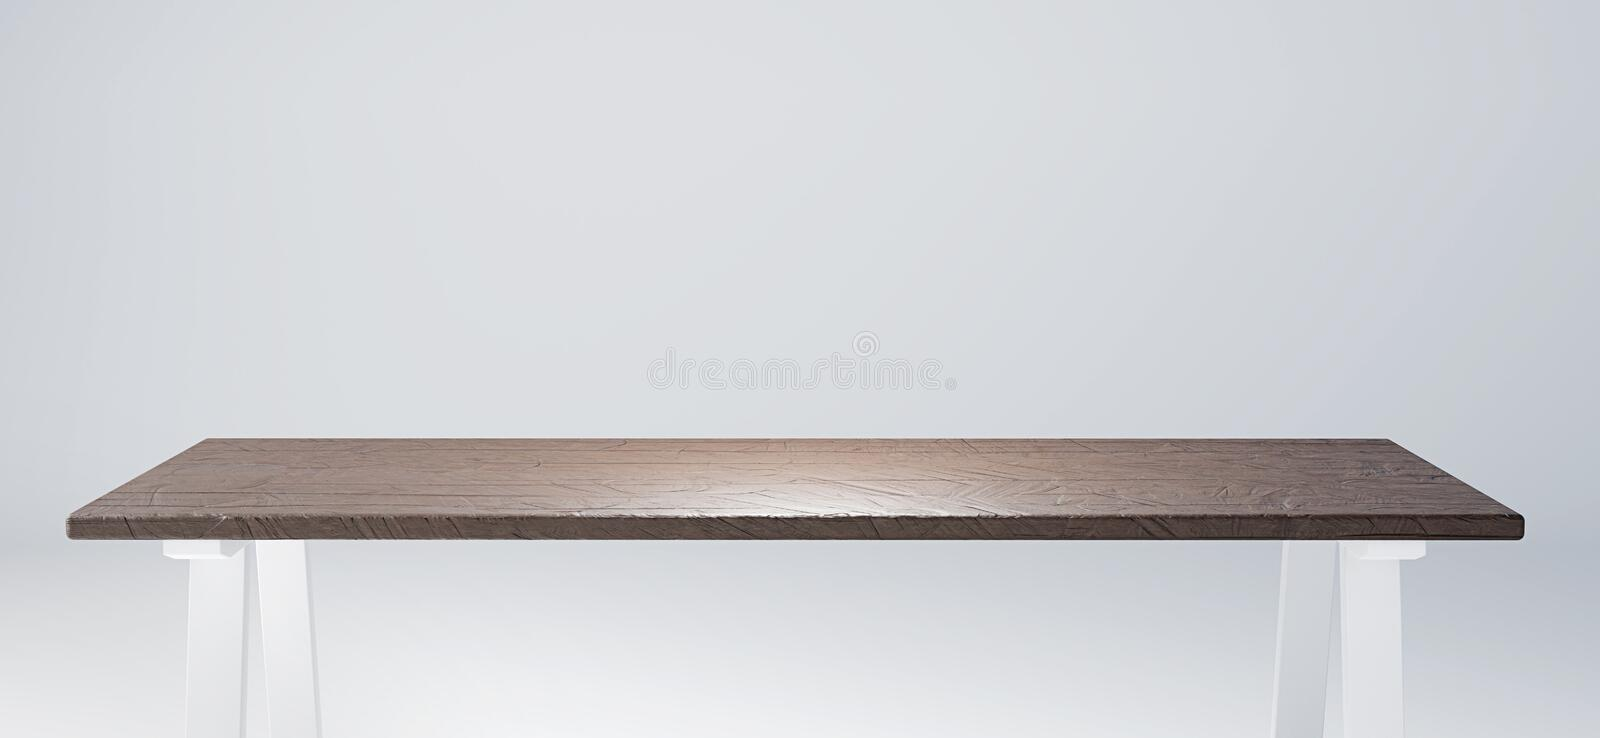 Table with rustic wooden tabletop suitable for product display. 3D render image. Empty table with rustic wooden tabletop suitable for product display. 3D render vector illustration